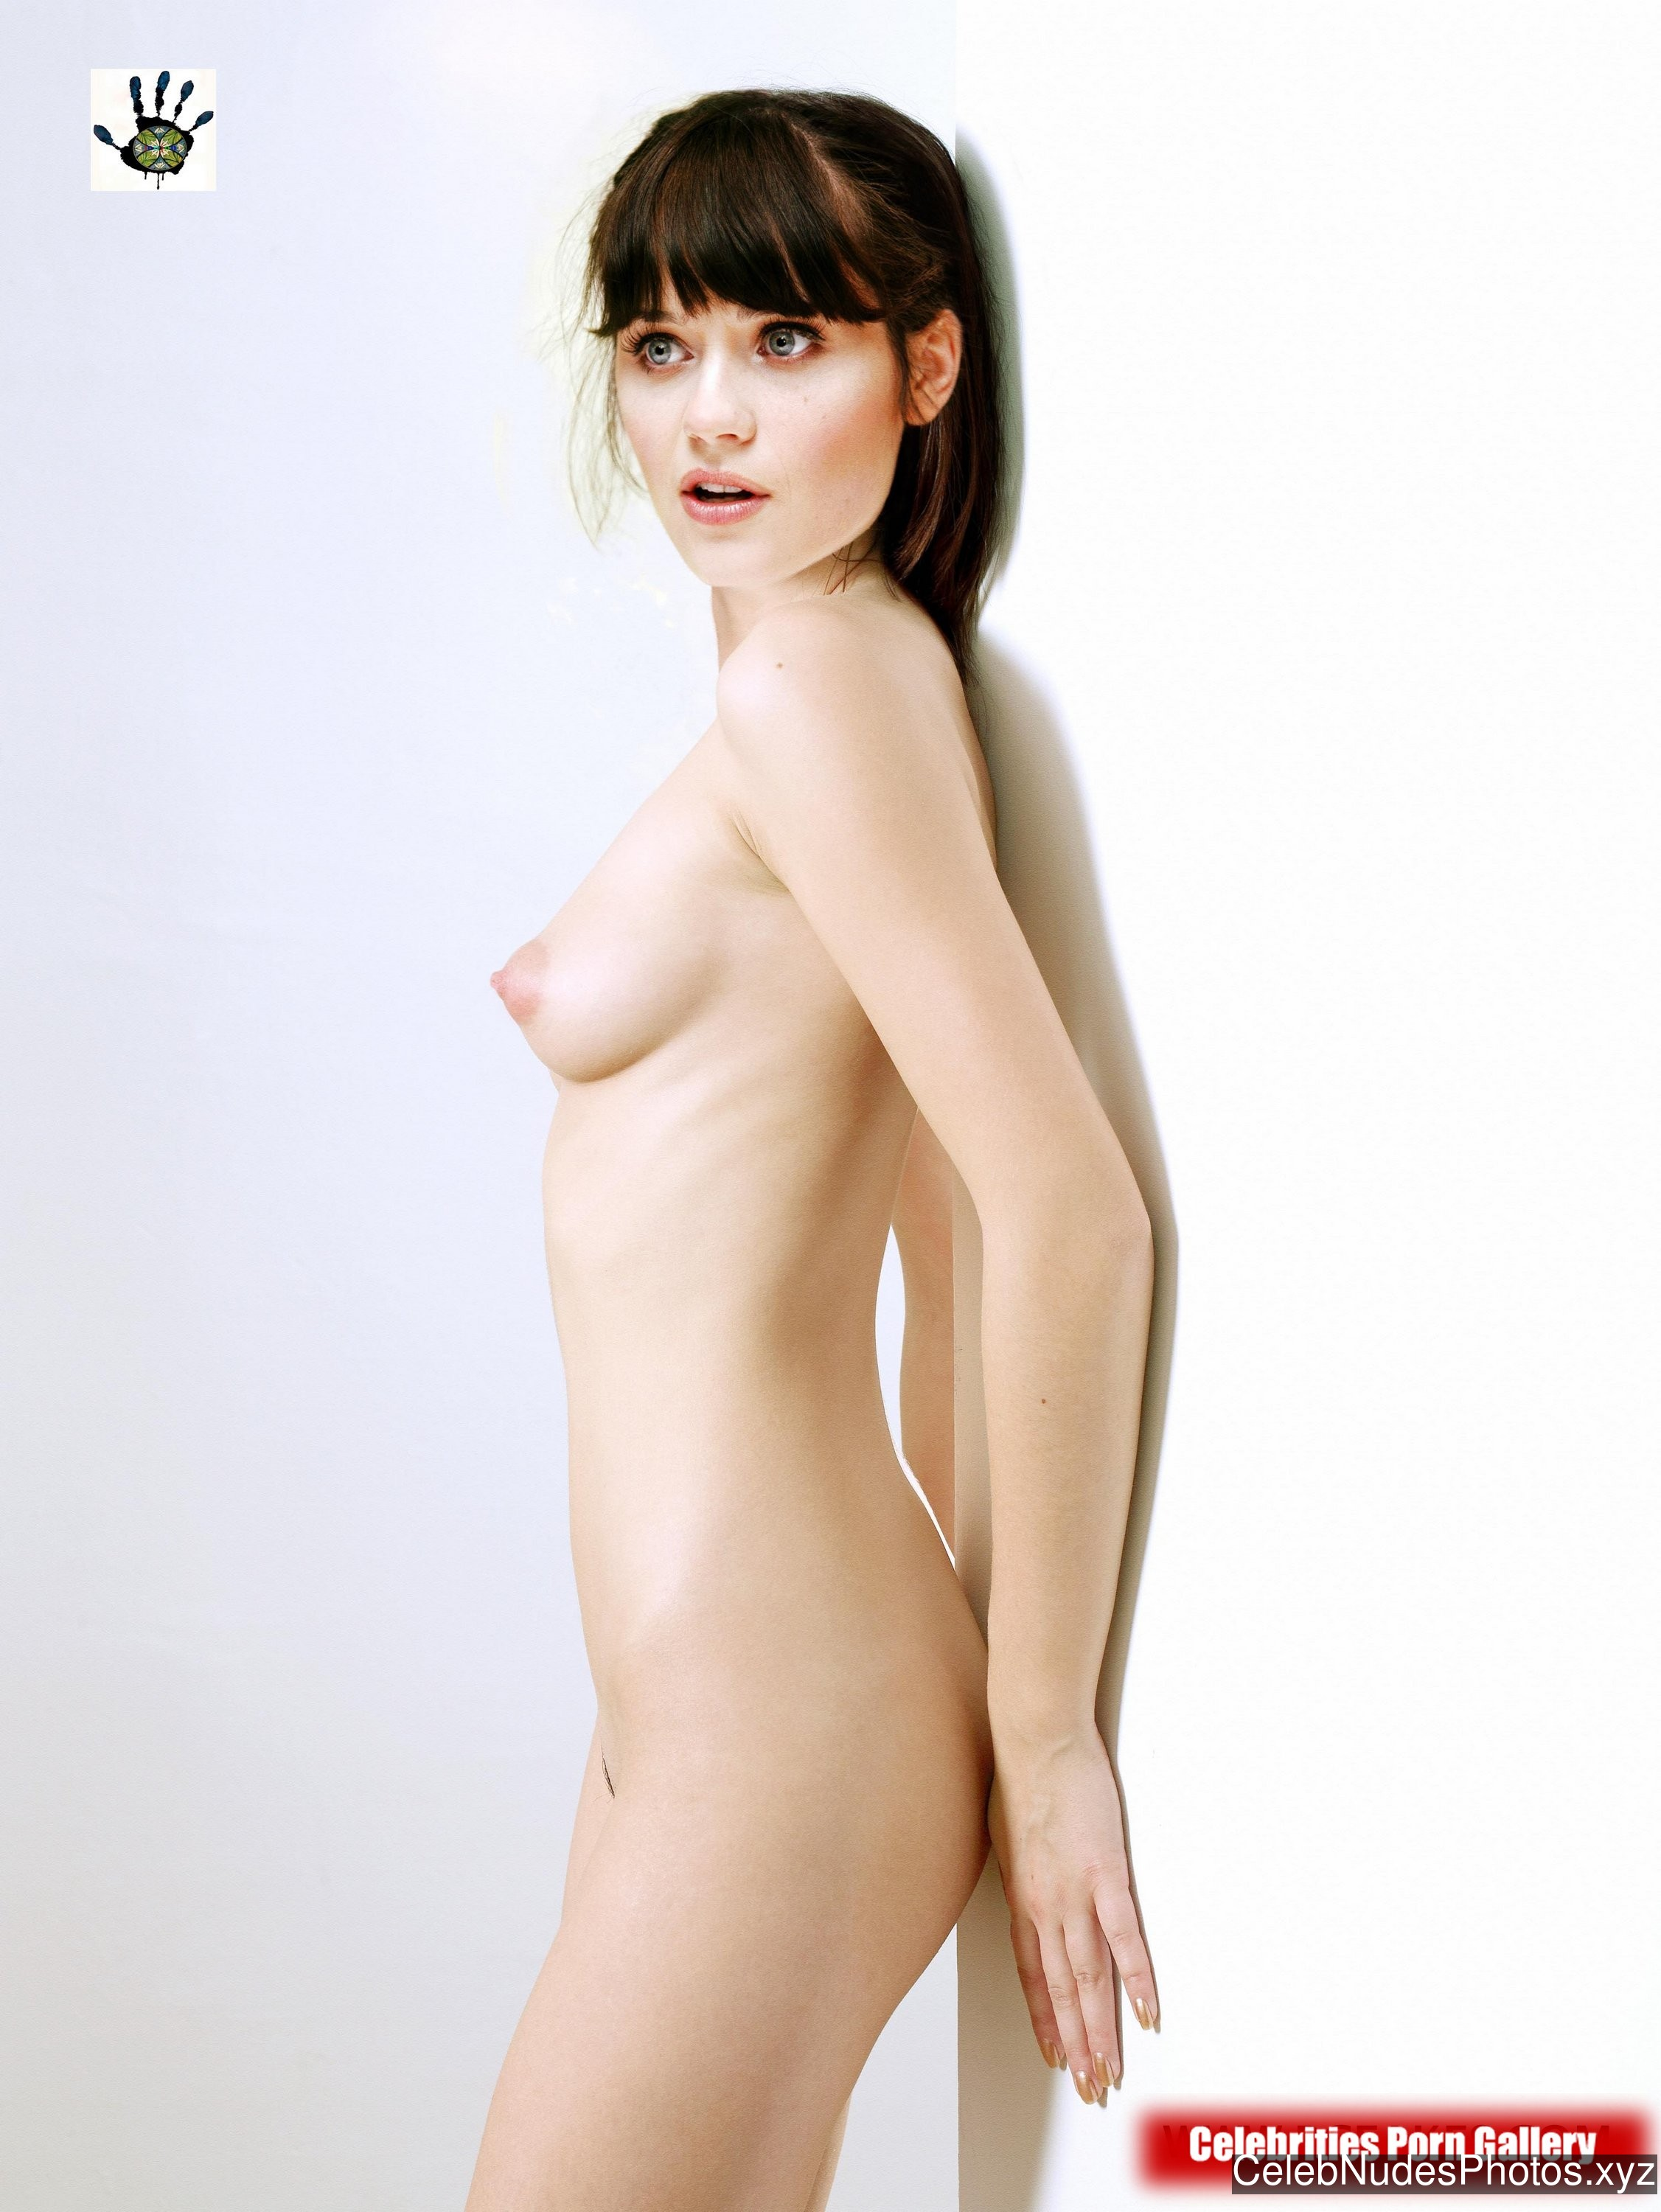 Zooey Deschanel Naked Celebrity sexy 19